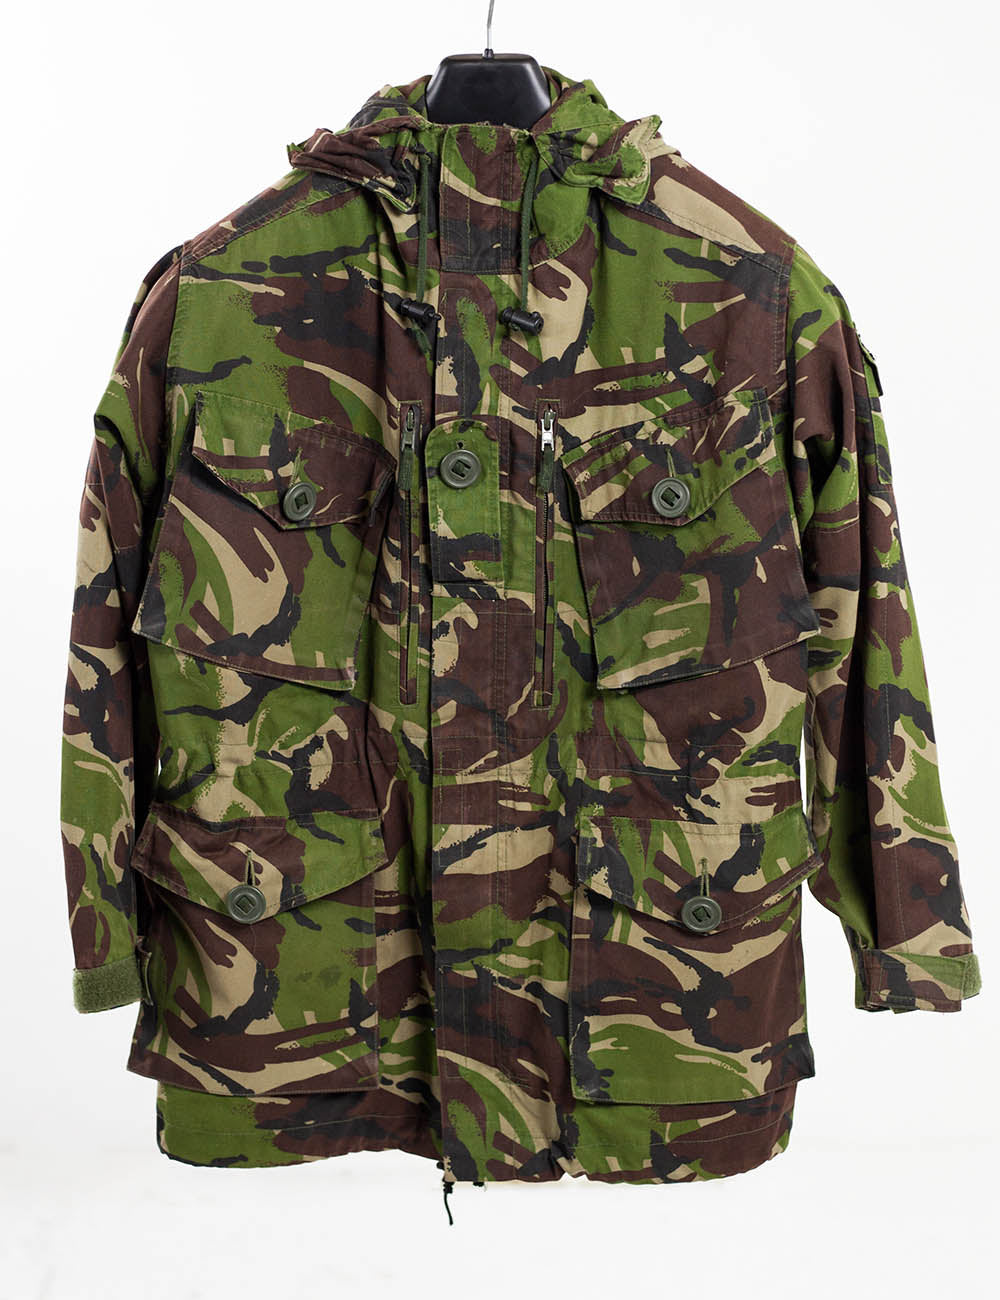 British Army Windproof Jacket/Smock - New DPM Camo